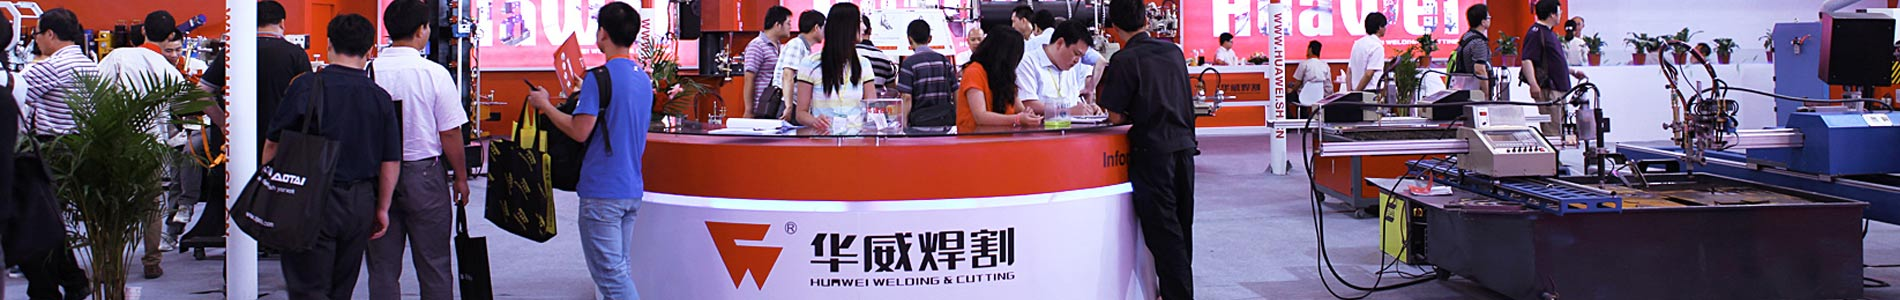 Shanghai Huawei Welding & Cutting Machine Co., Ltd. Banner